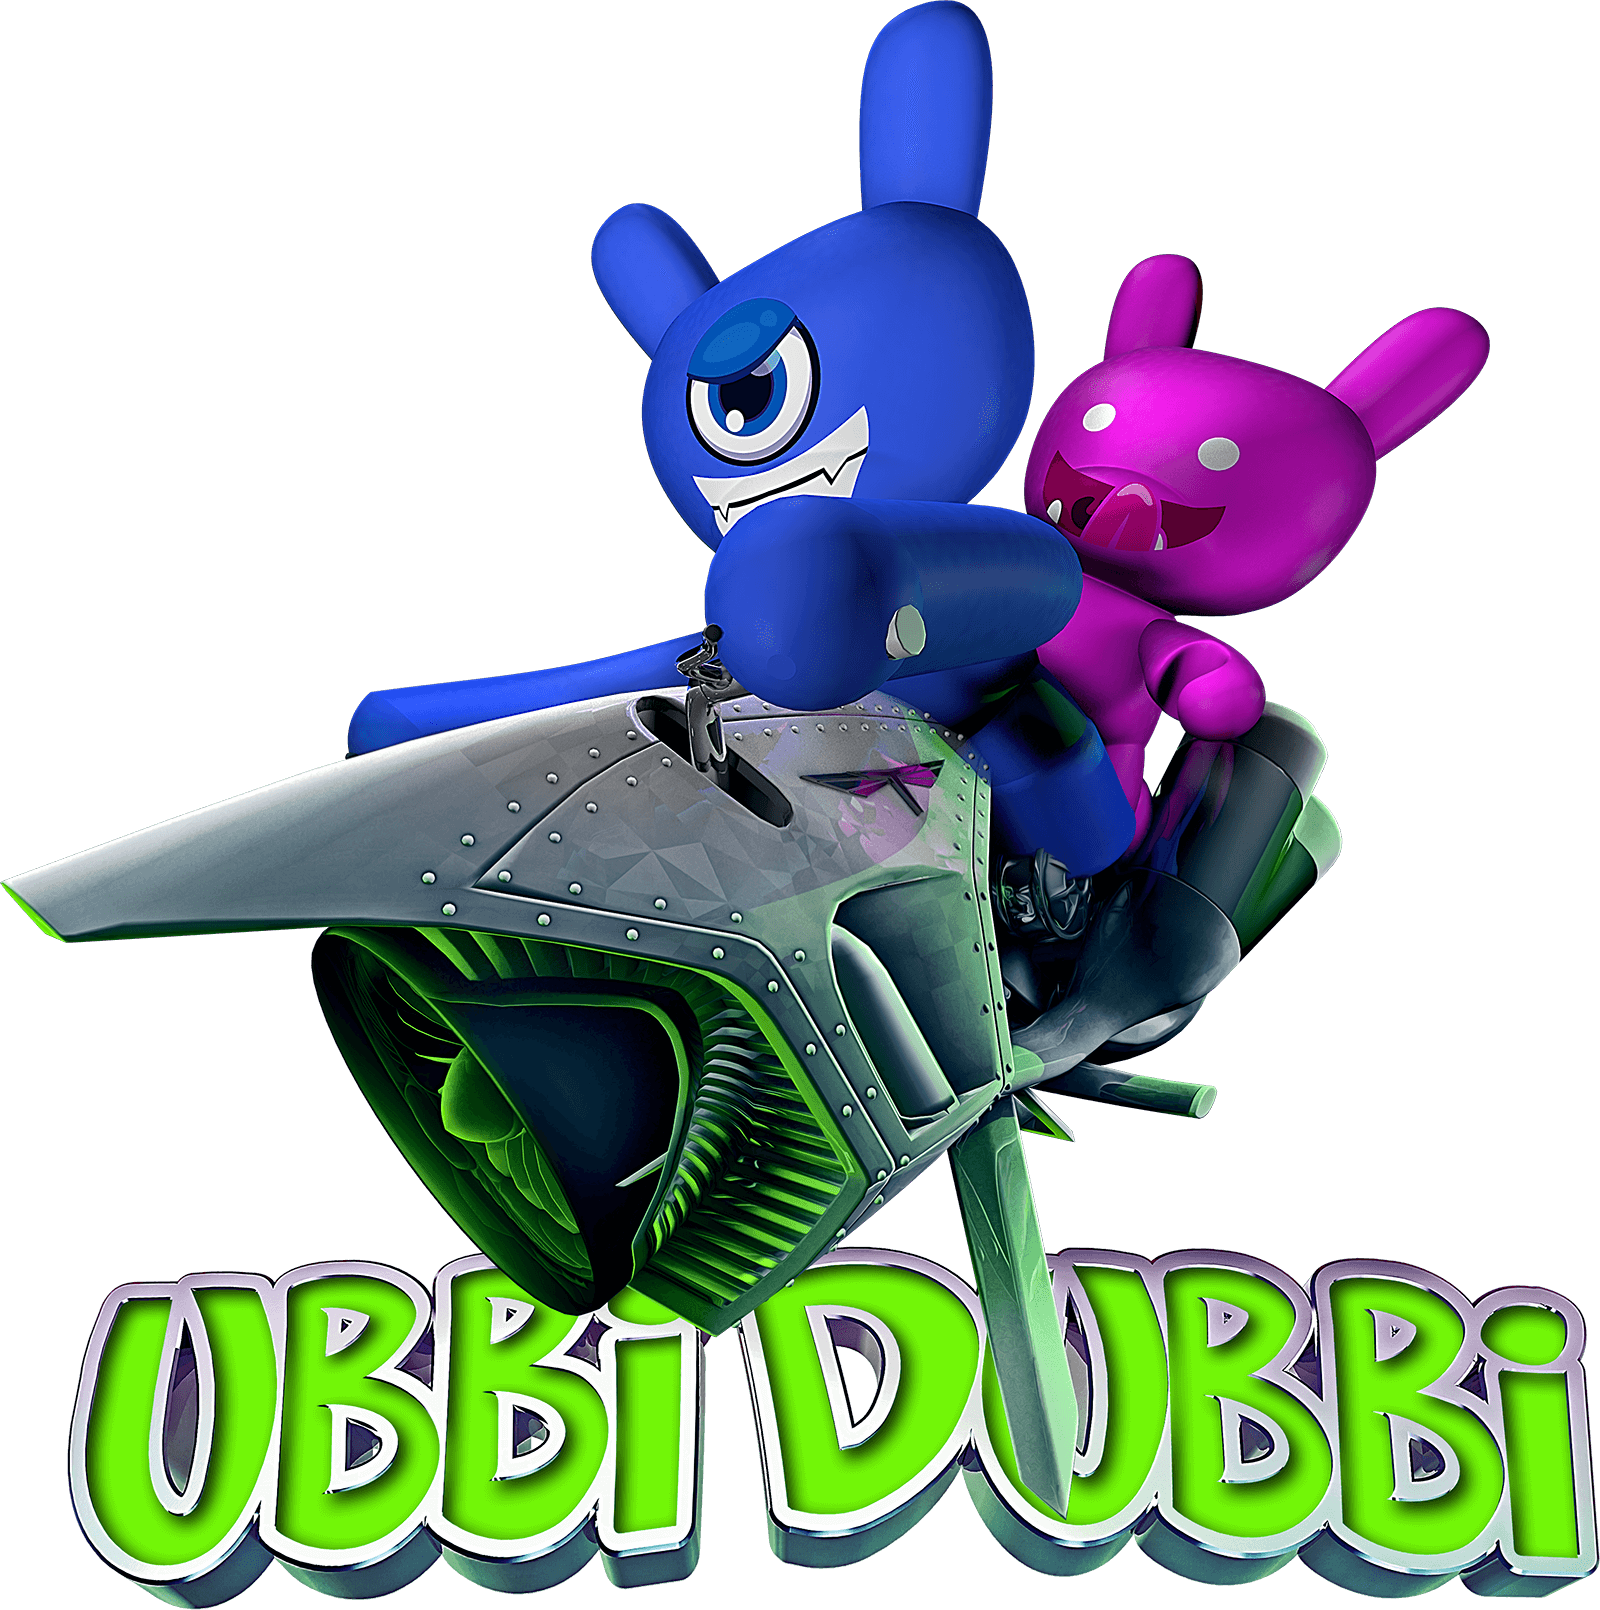 logo for Ubbi Dubbi Festival 2020